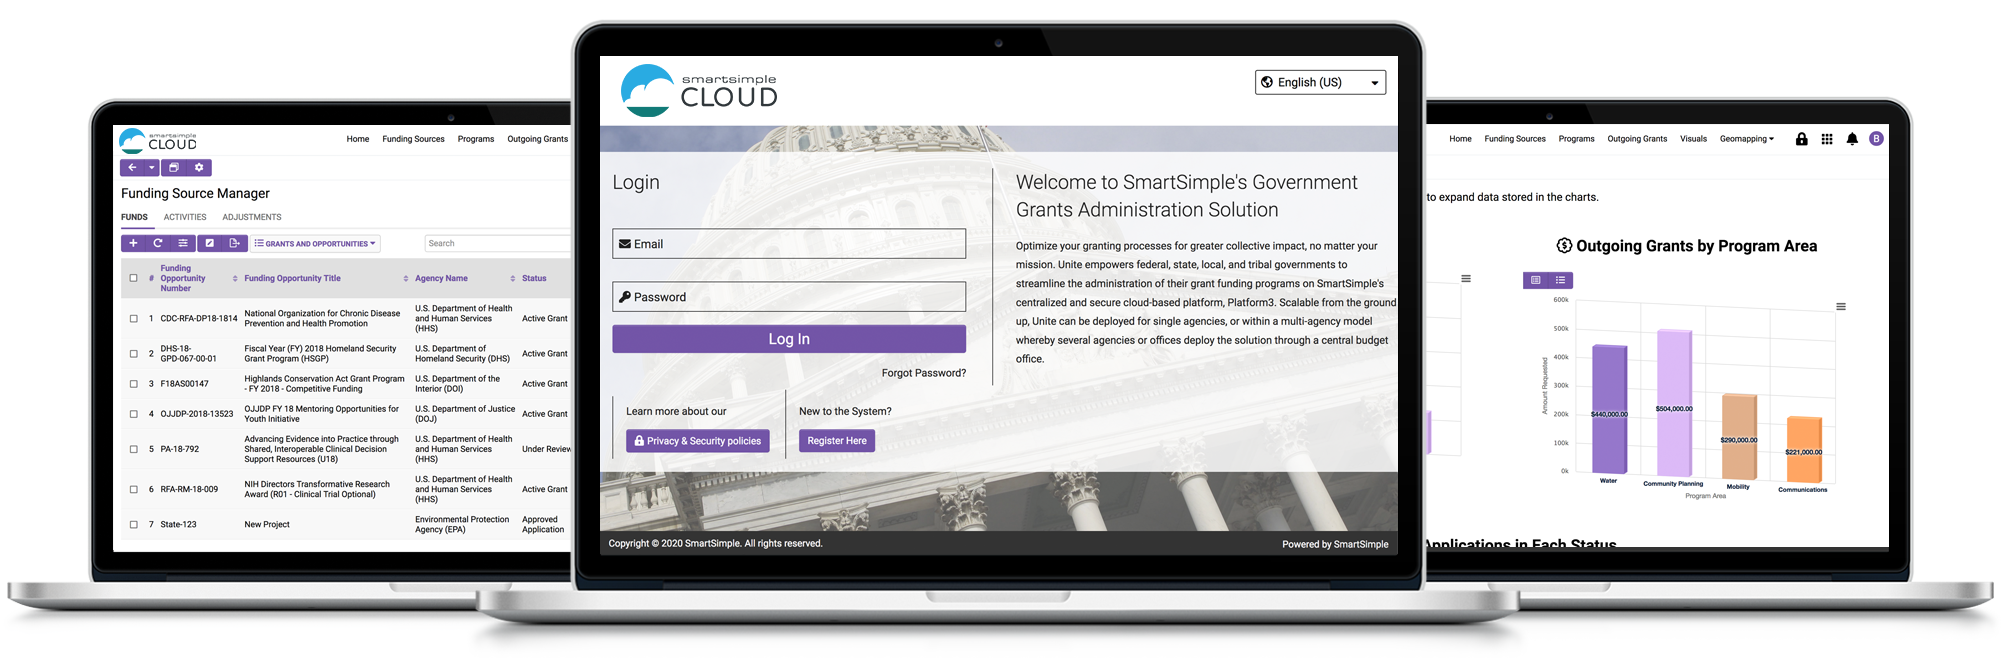 3 Scsreenshots of SmartSimple Cloud for Government Funding